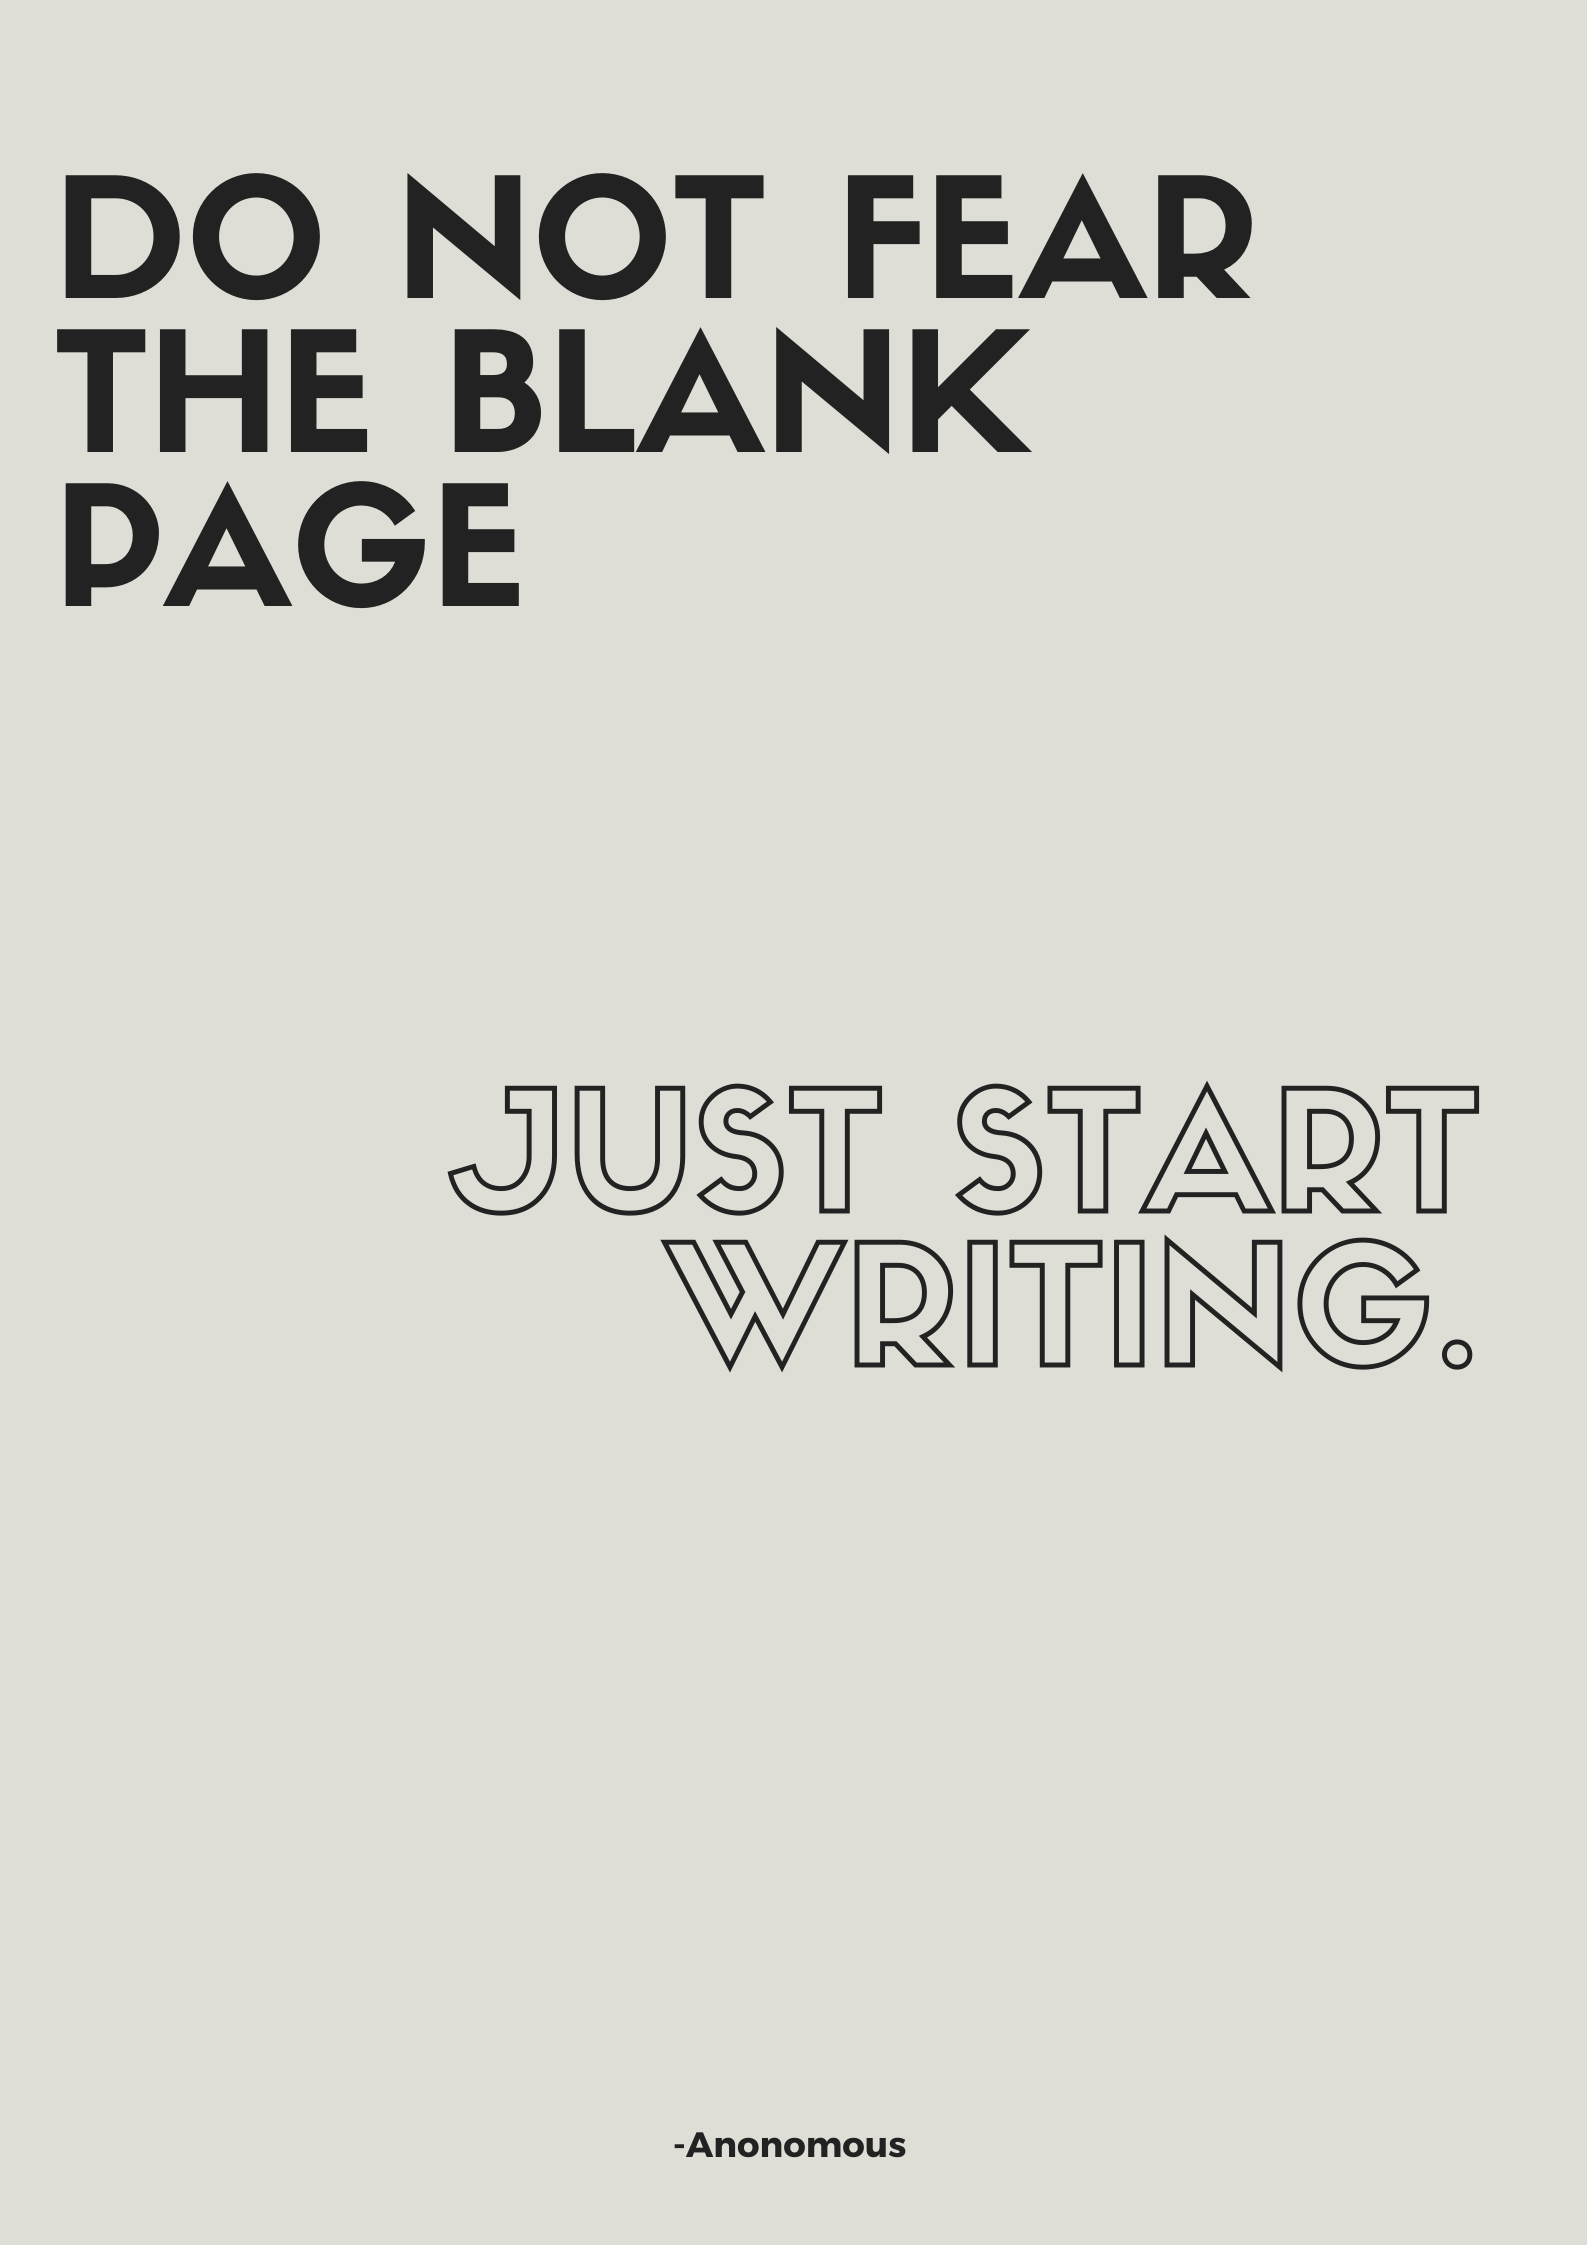 [Image] Write first, it can be anything. The ideas will come later.